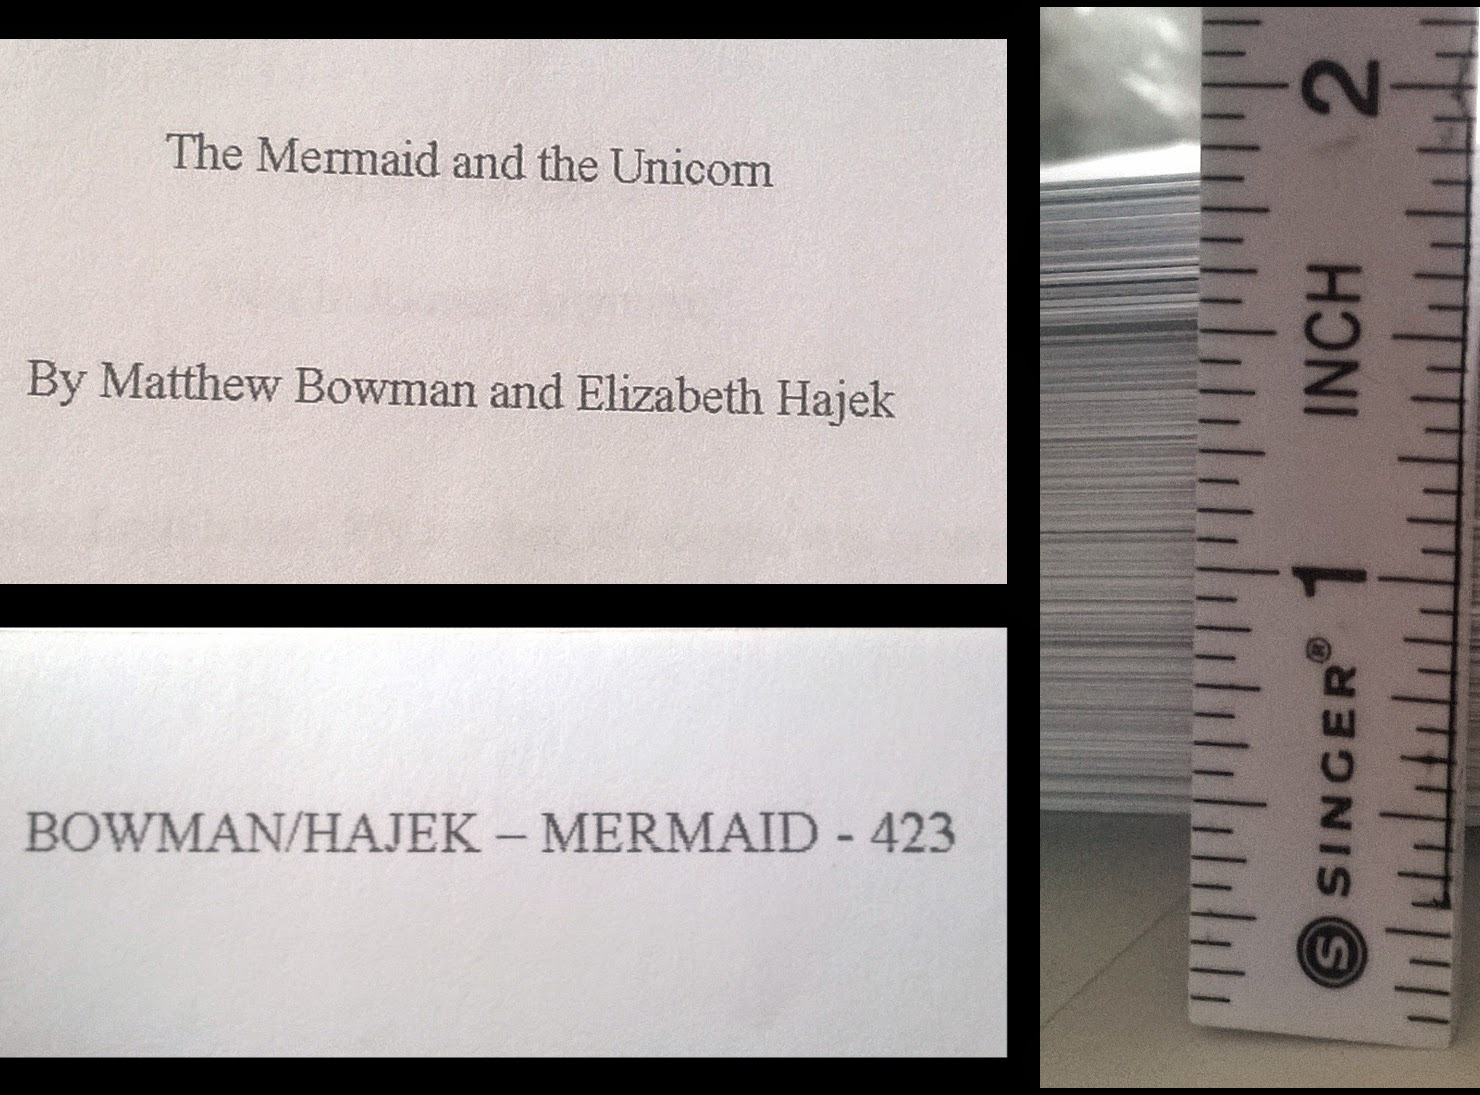 elenatintil the mermaid and the unicorn first printout is huge